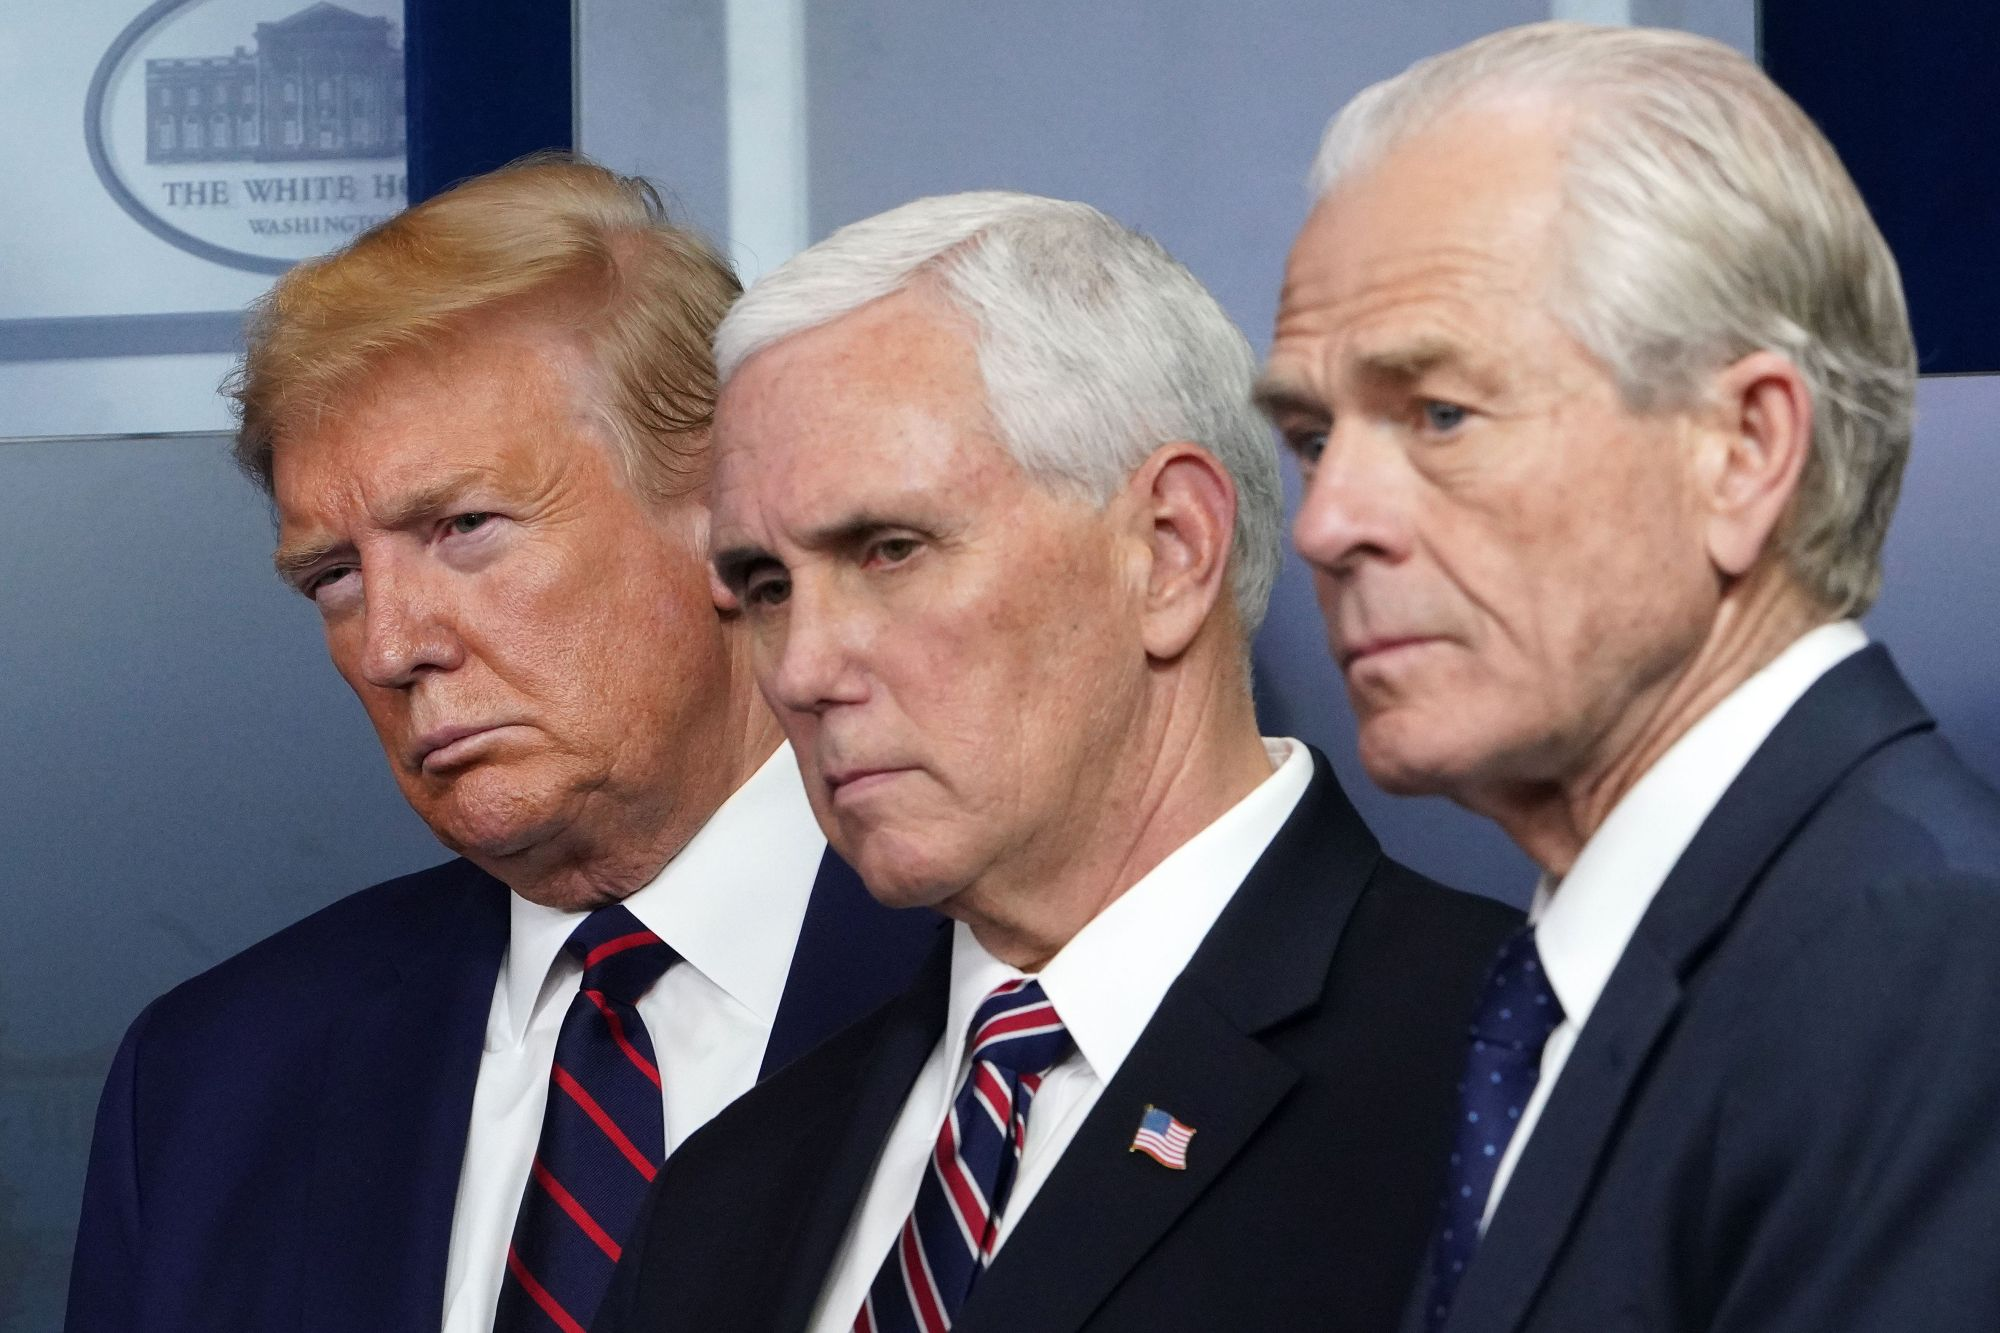 President Donald Trump, Vice President Mike Pence and Director of Trade and Manufacturing Policy Peter Navarro look on during the White House's daily briefing on the novel coronavirus on April 2, 2020. (Credit: MANDEL NGAN / AFP / Getty Images)